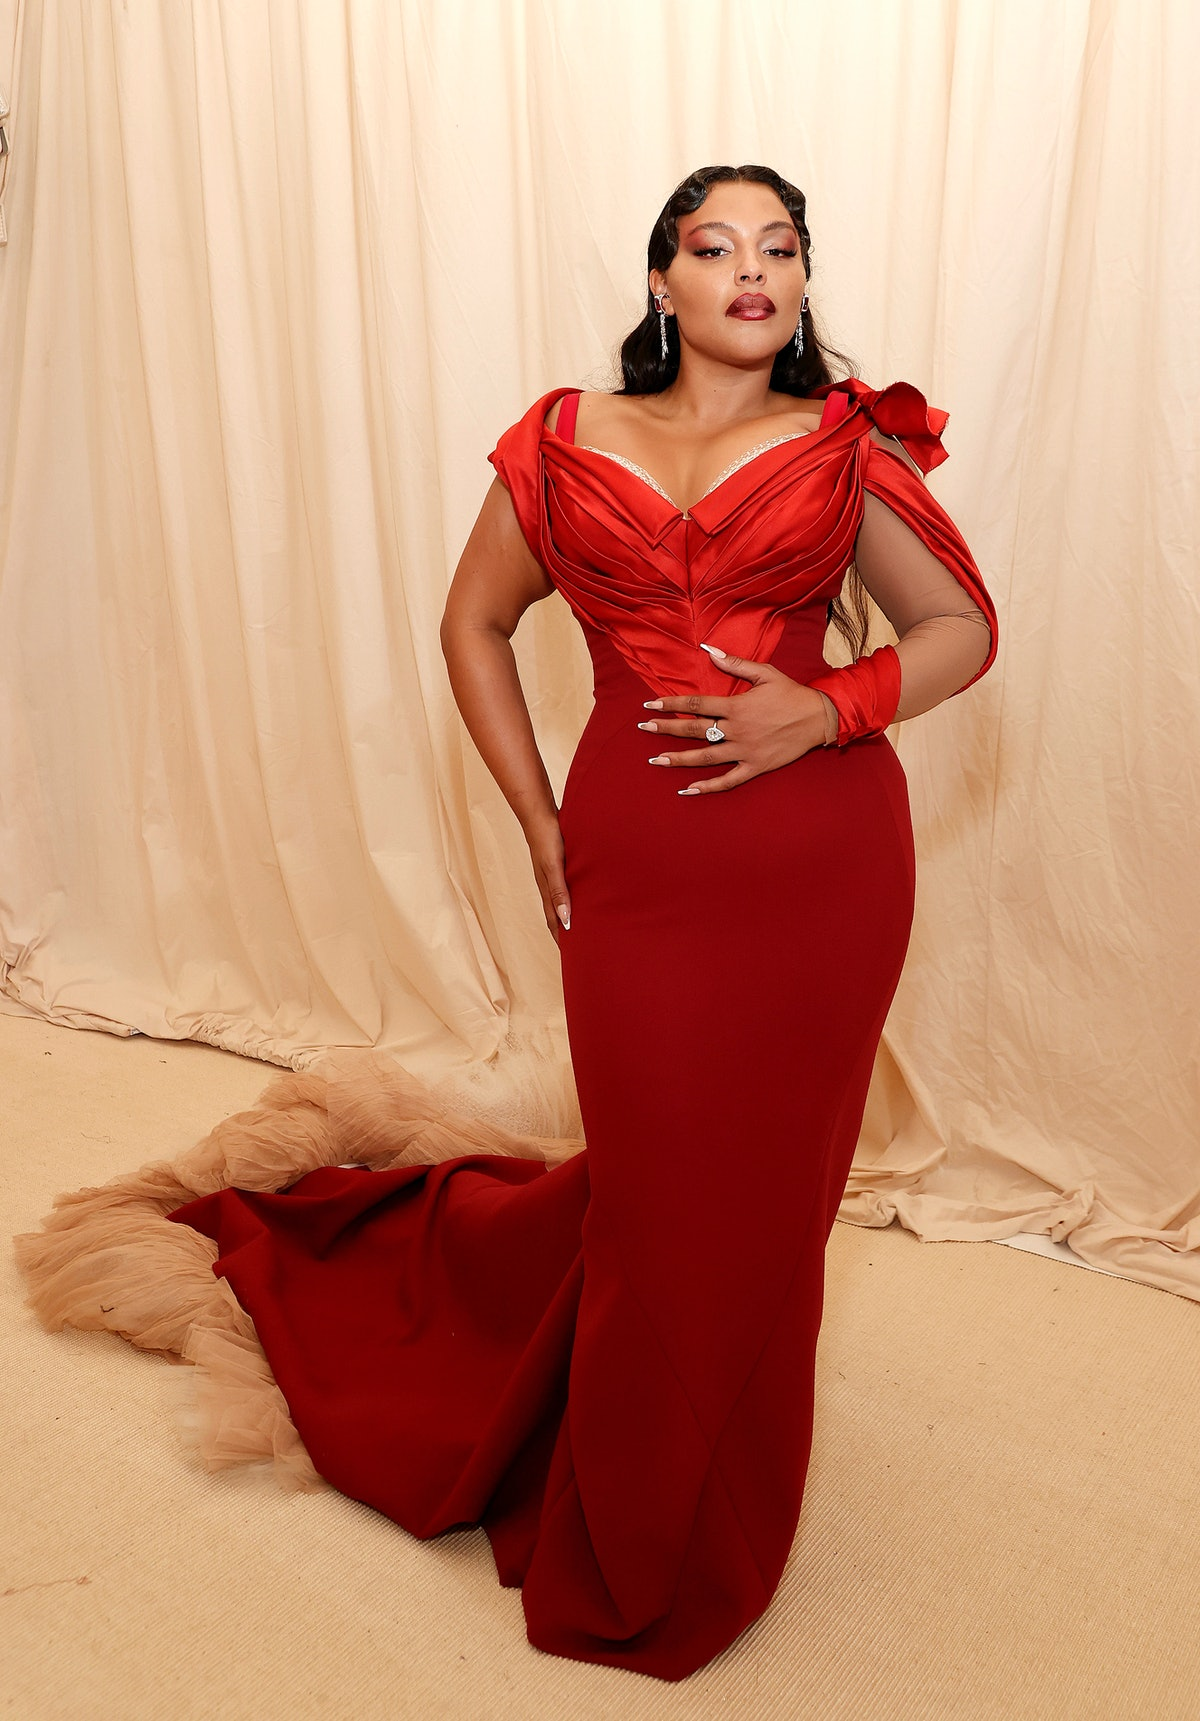 Paloma Elsesser attends The 2021 Met Gala Celebrating In America: A Lexicon Of Fashion at Metropolit...